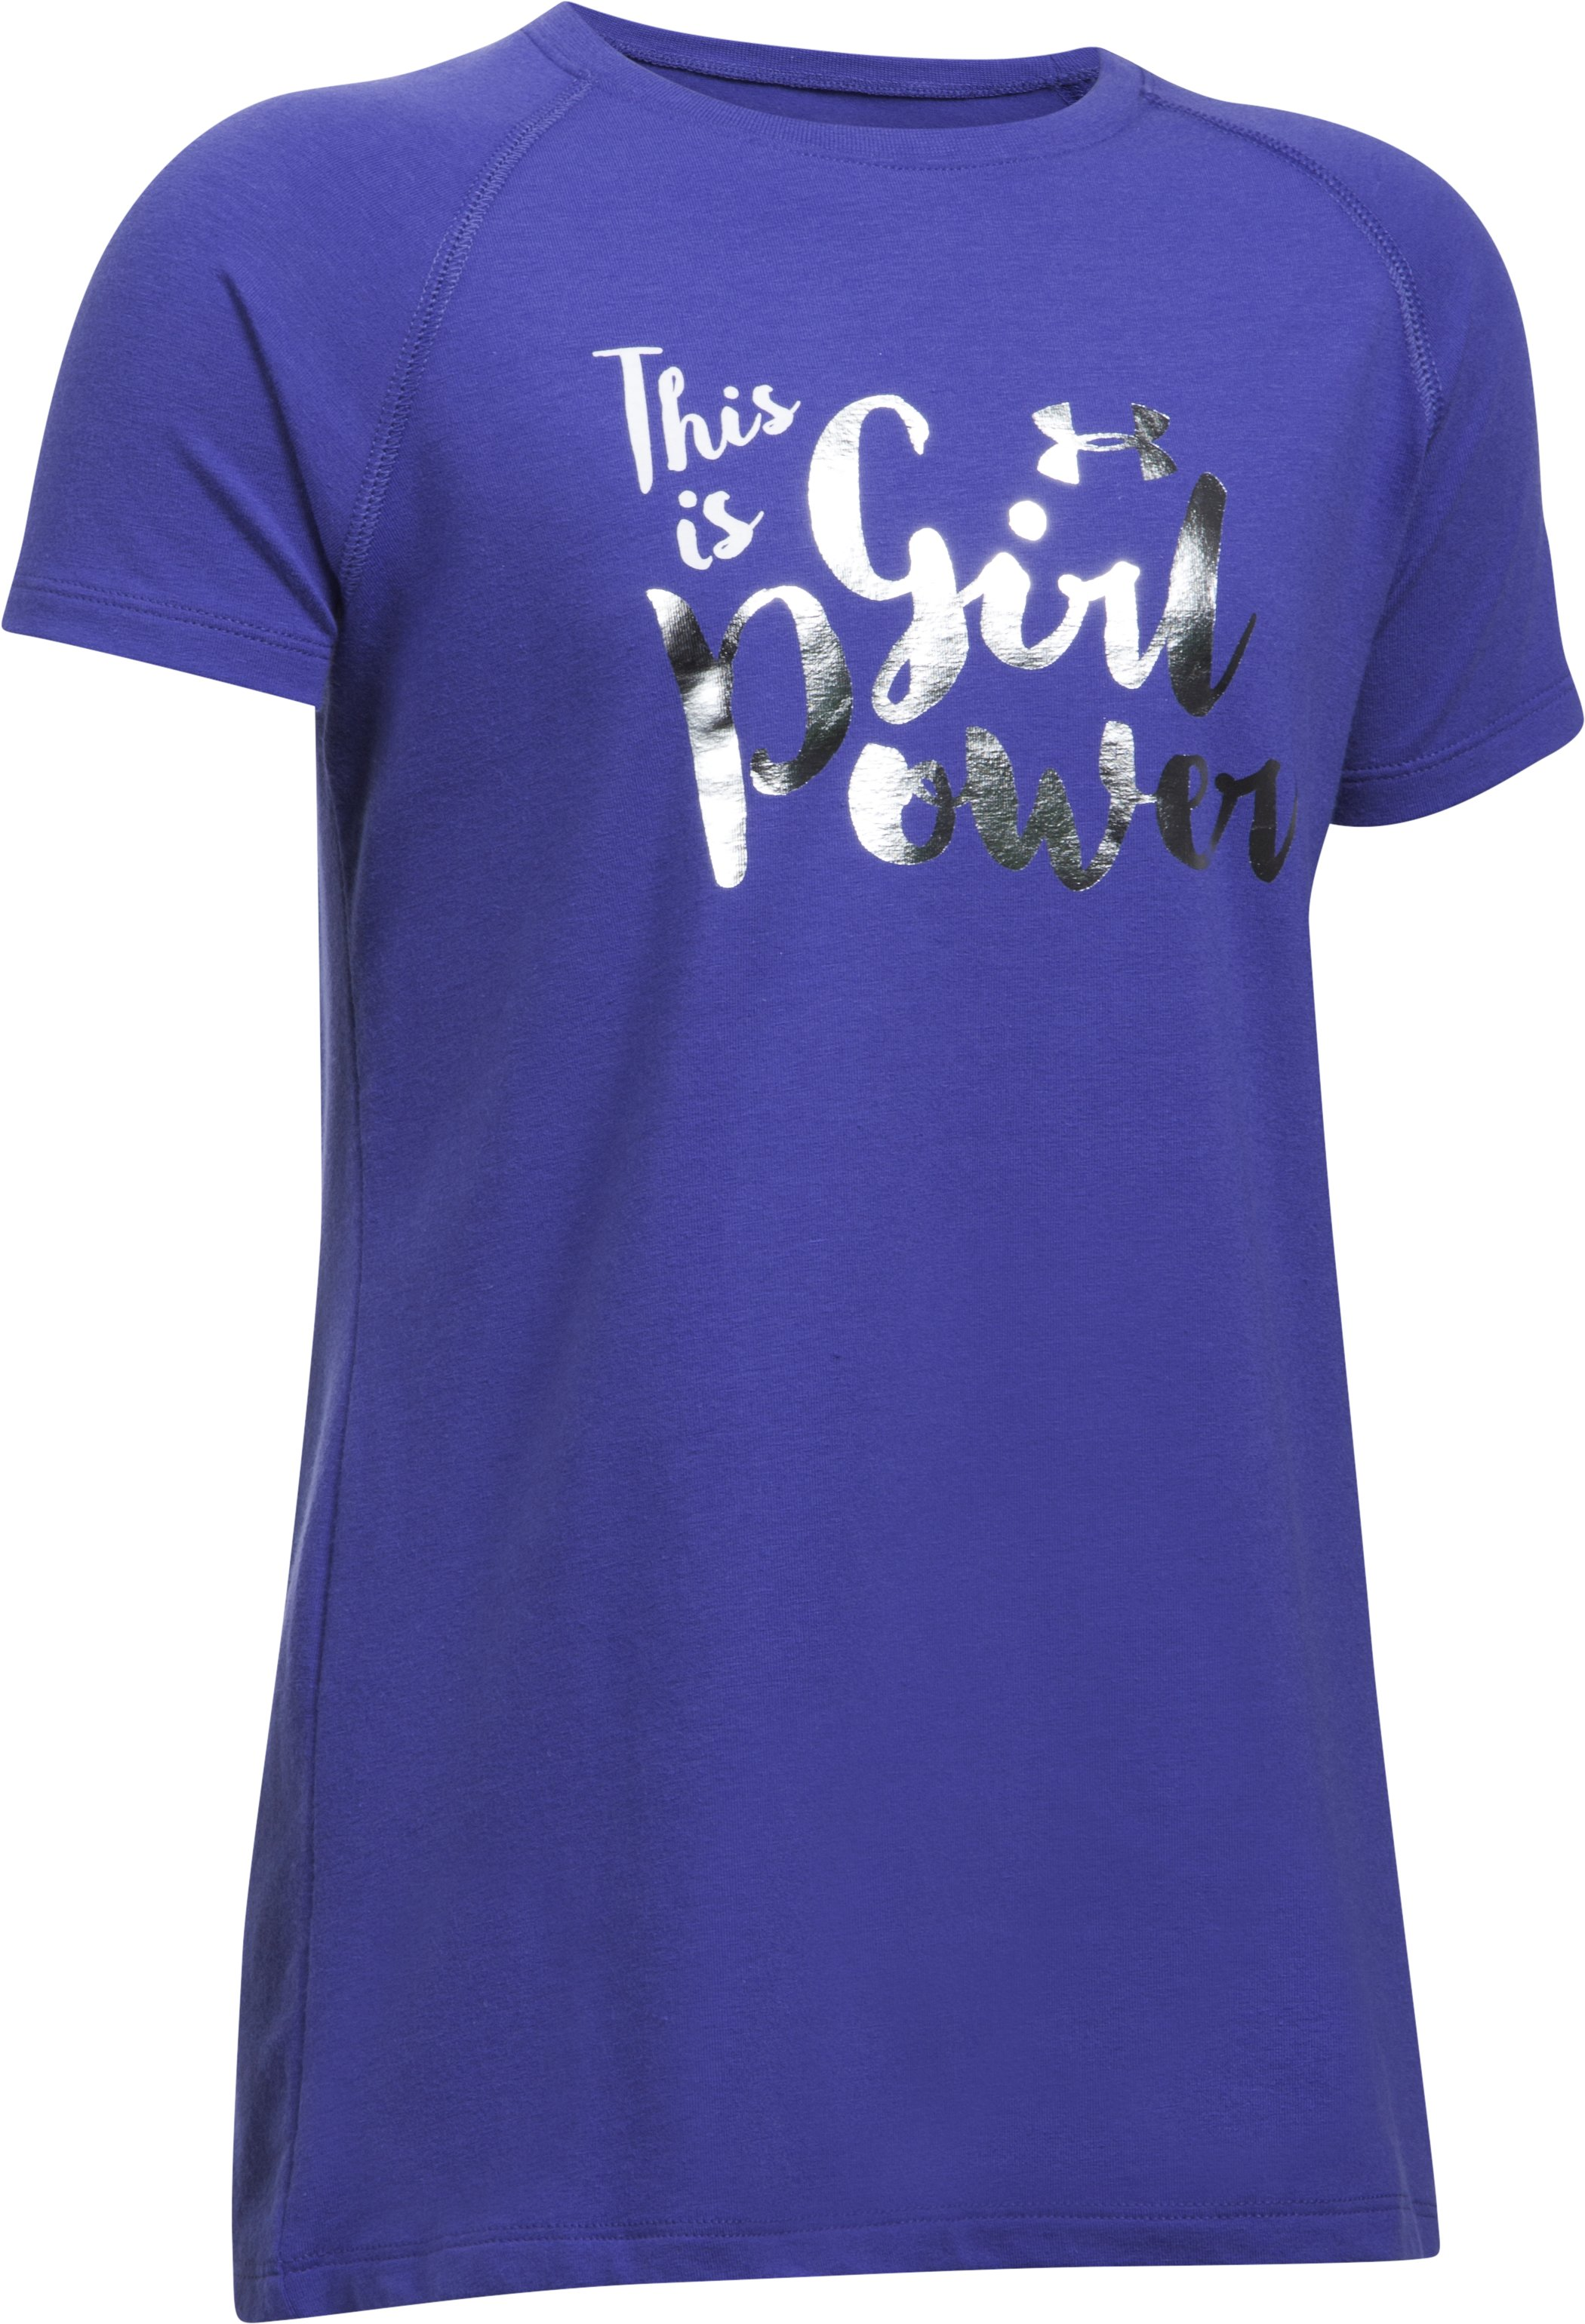 Girls' UA This Is Girl Power T-Shirt, Pluto